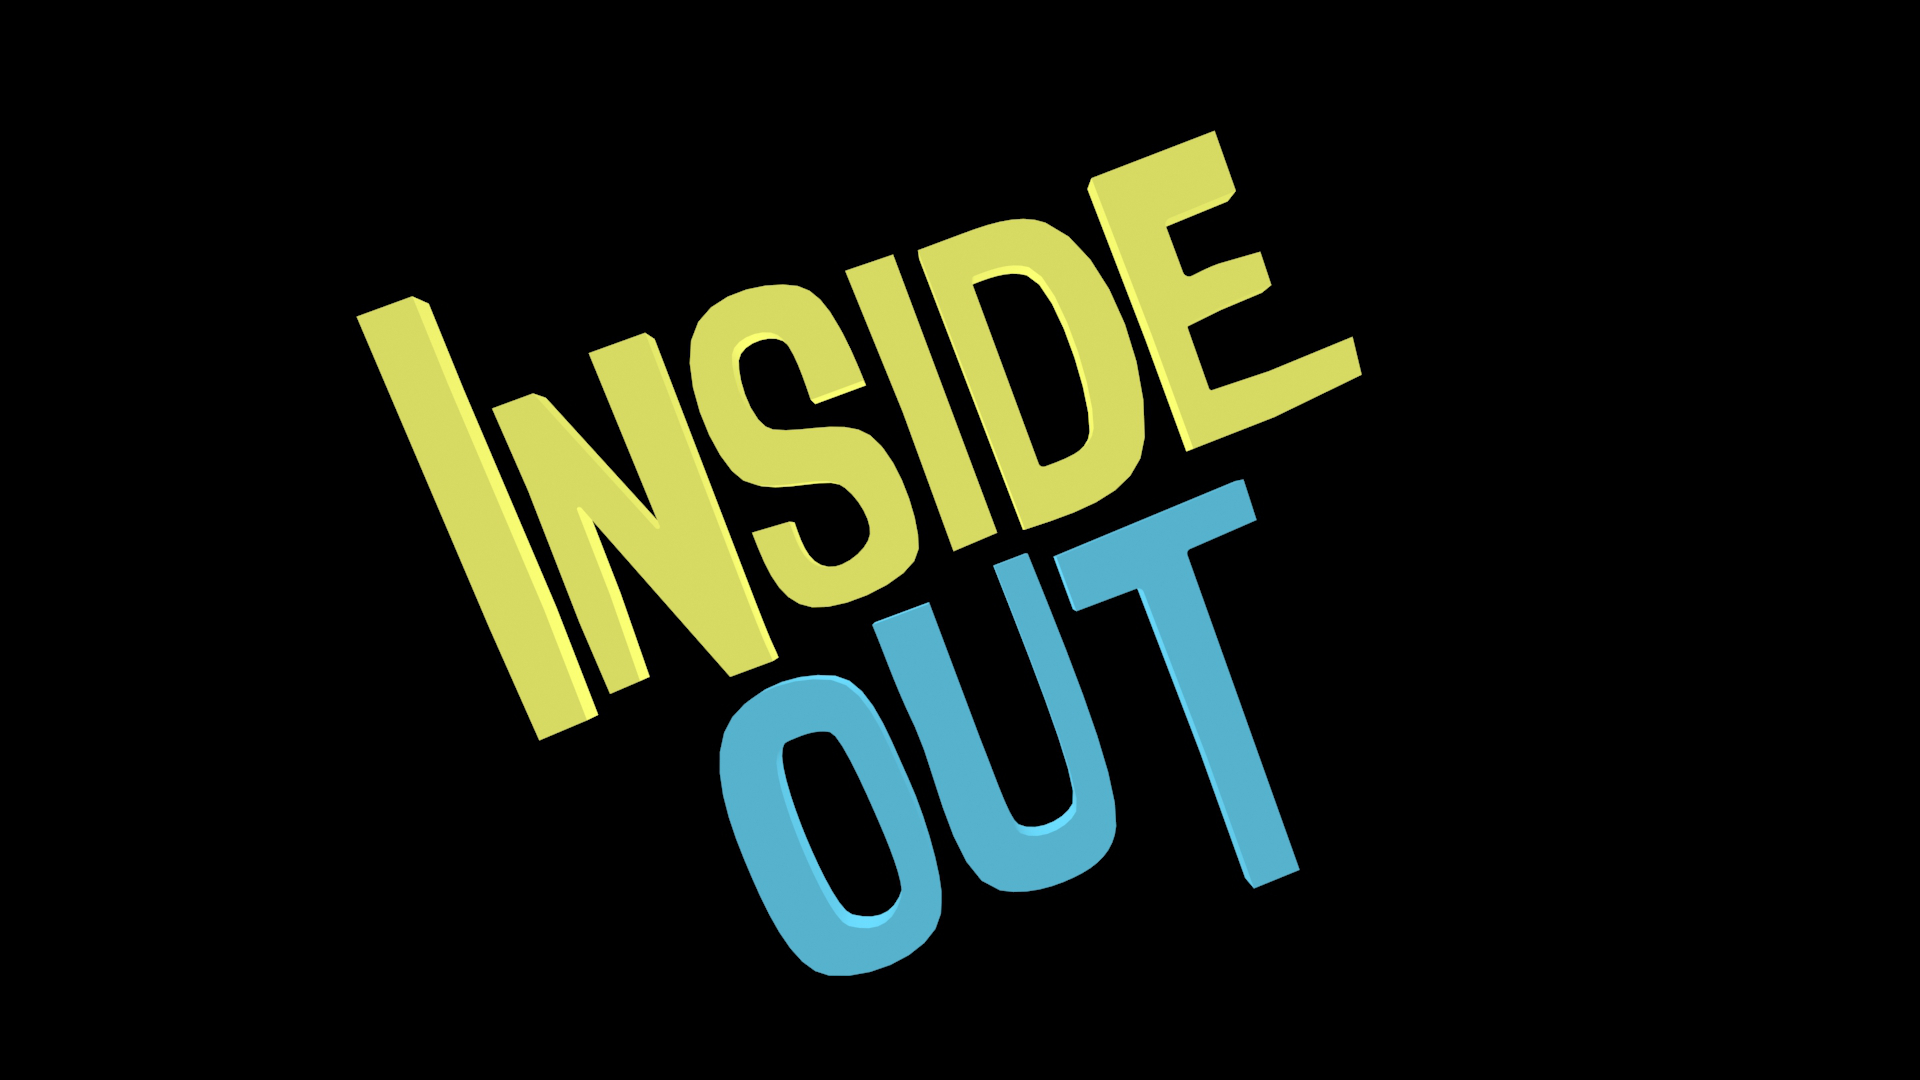 Inside Out Wallpapers, Pictures, Images